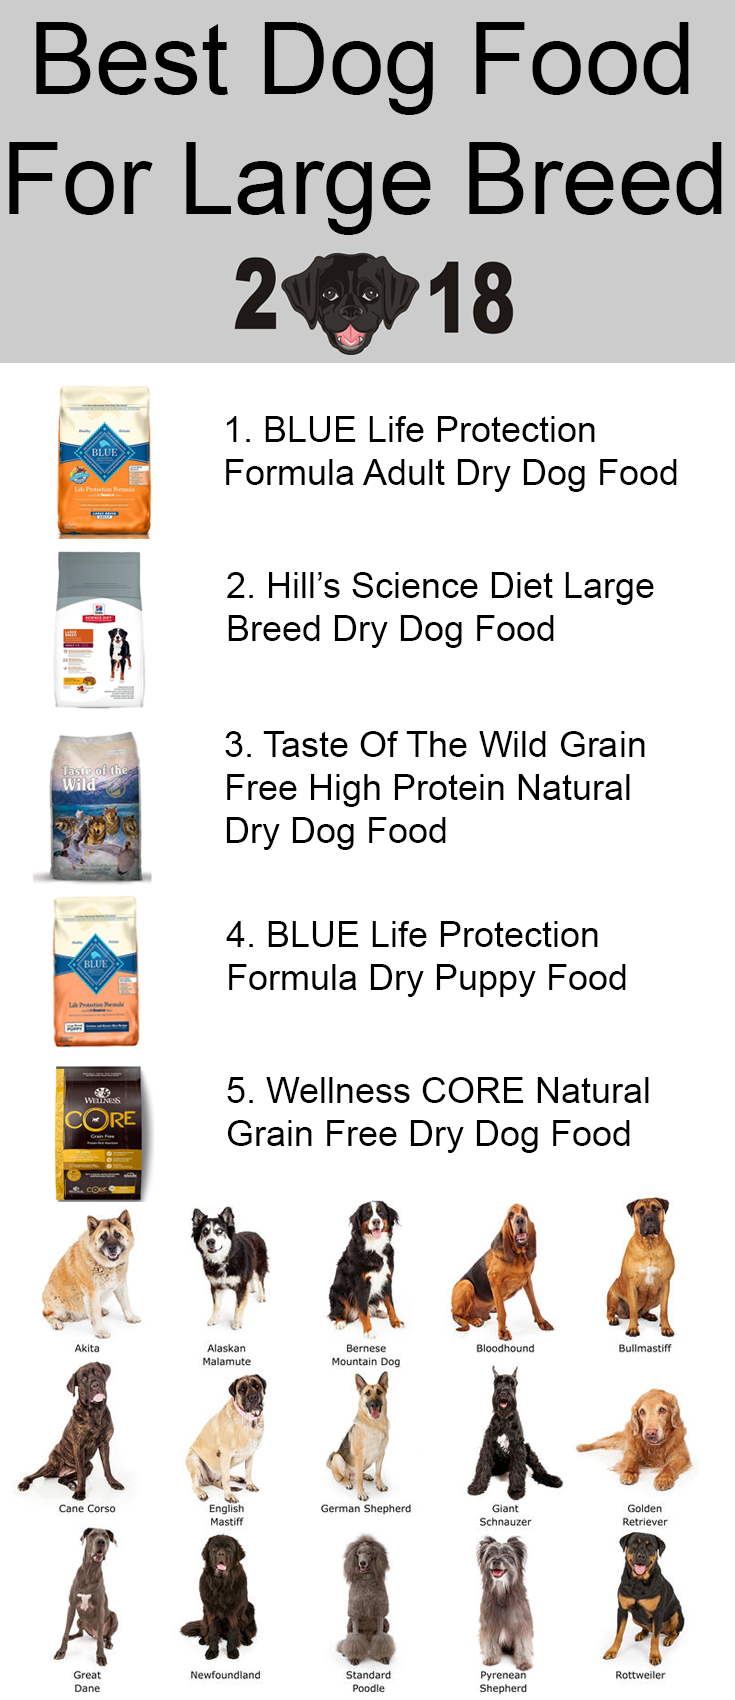 10 Best Healthiest Dog Foods For Large Breed Dogs In 2021 Dog Food Recipes Large Breed Dog Food Best Dog Food